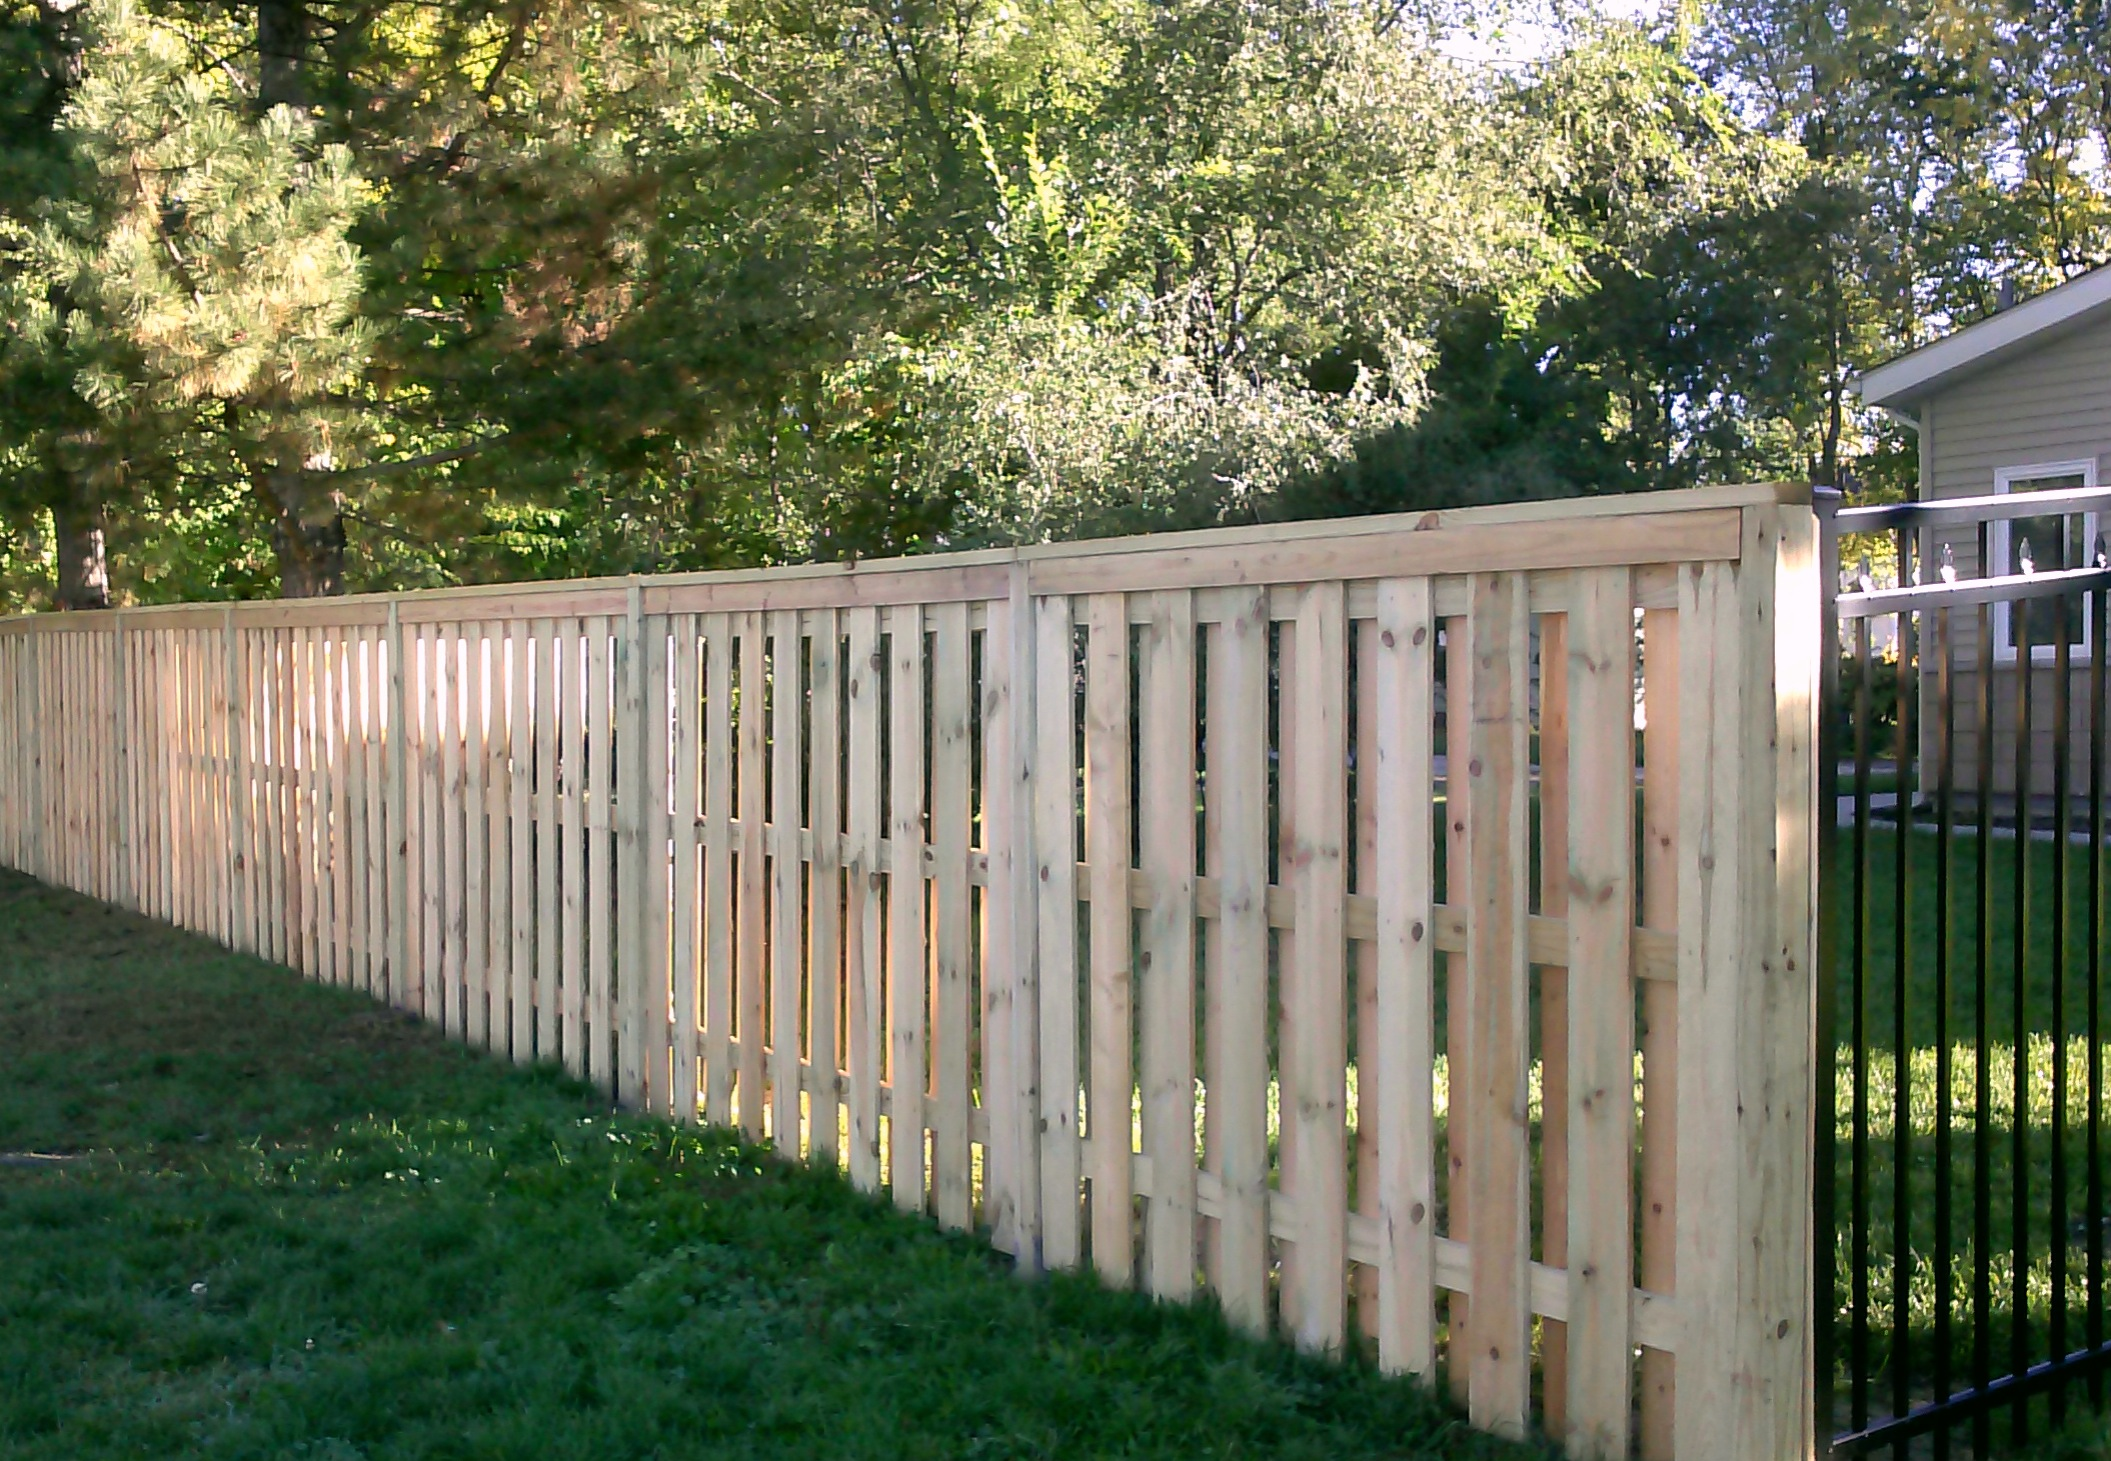 Helping To Revitalize Neighborhoods One Fence At A Time